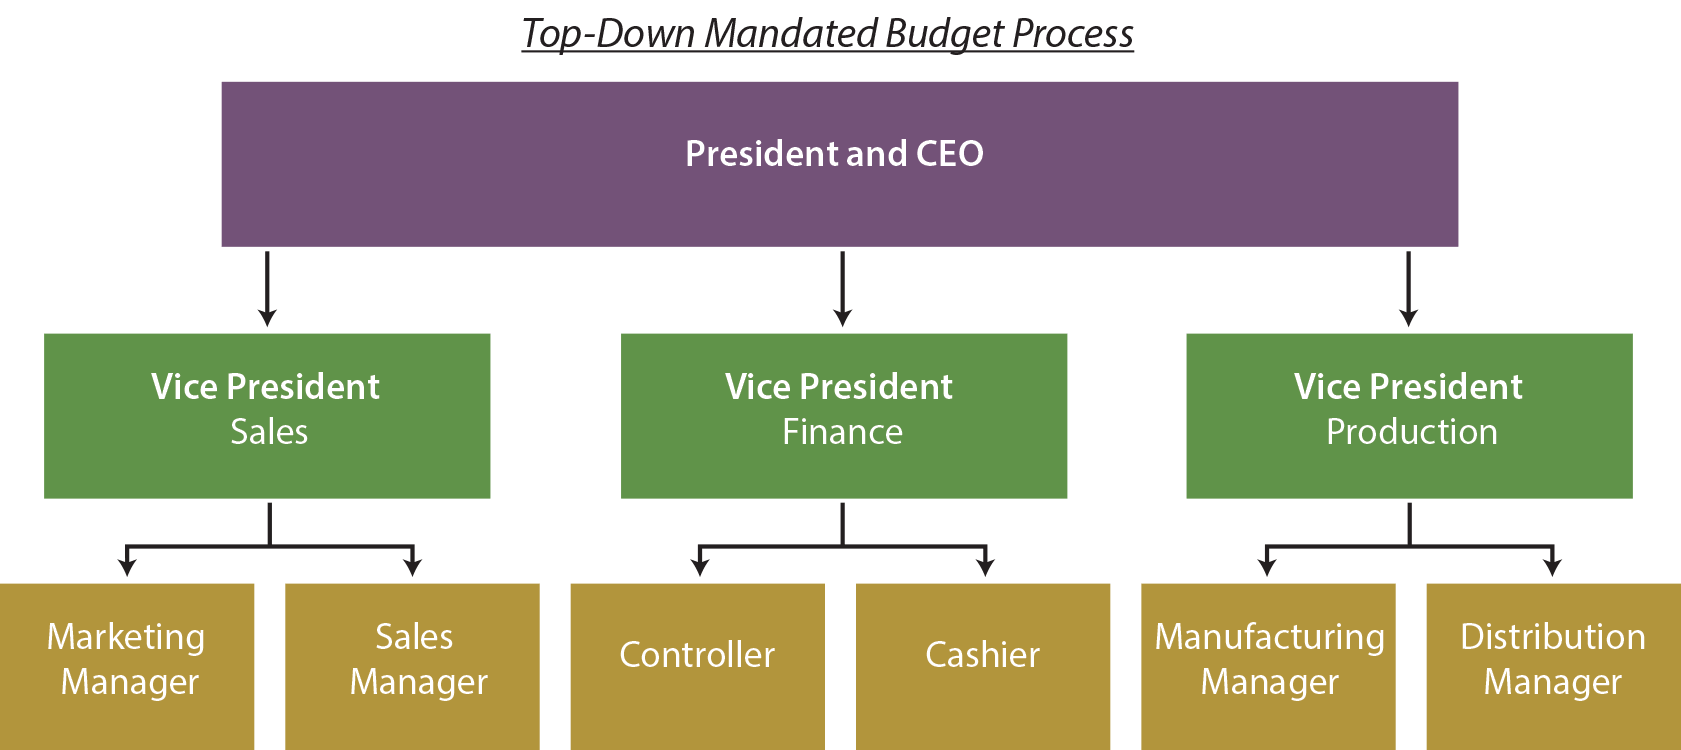 Top-Down Budget Process Diagram